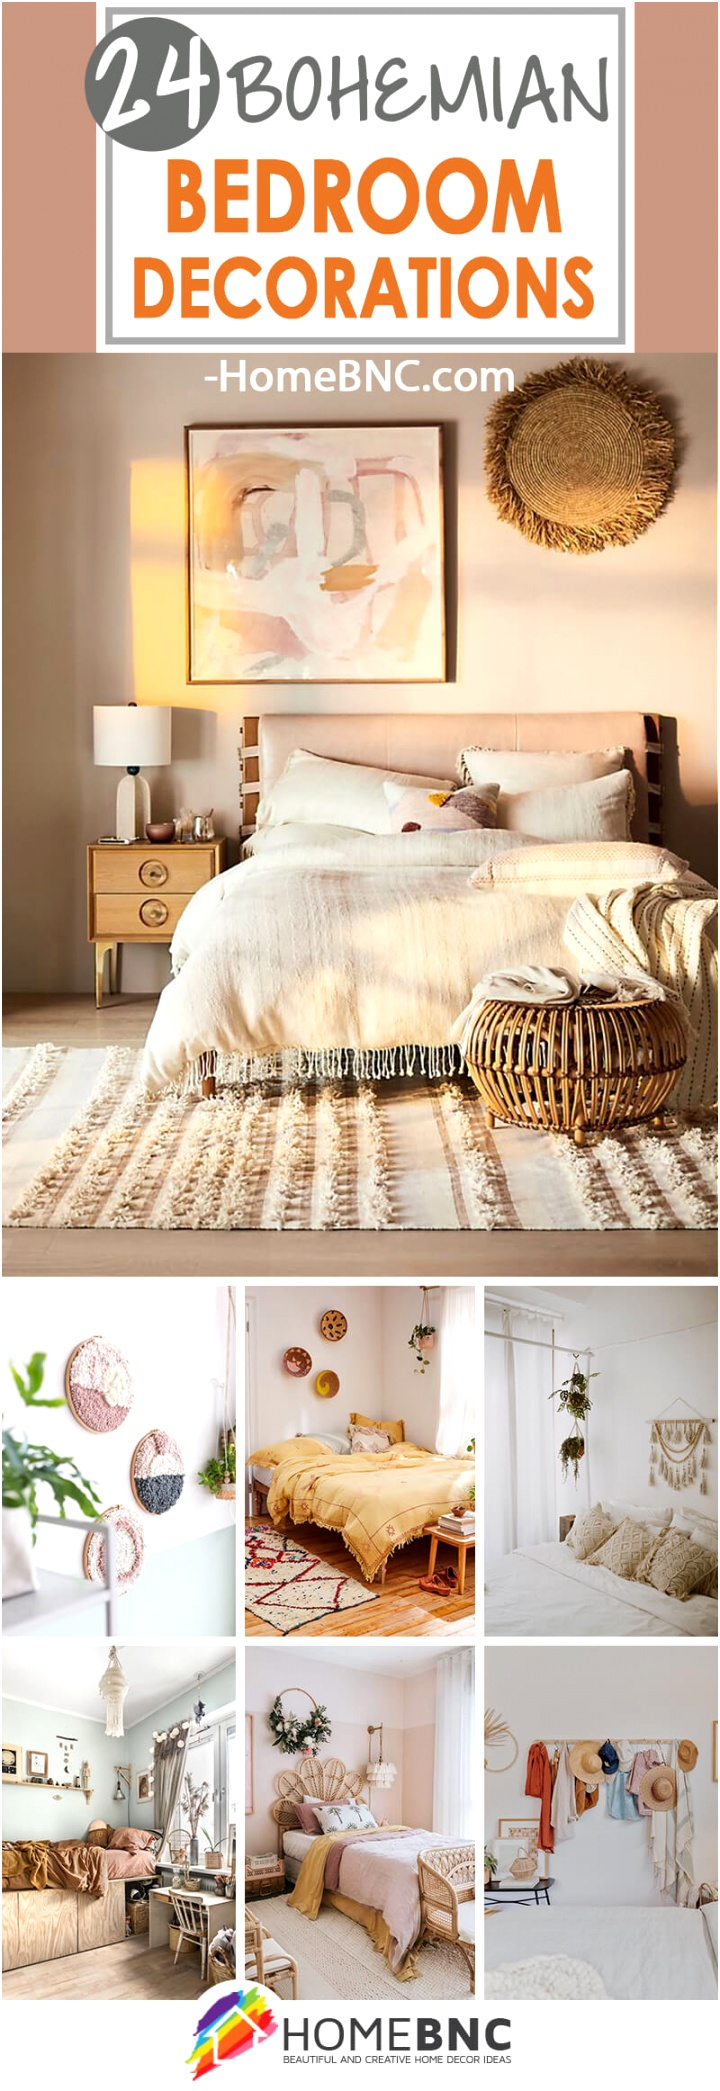 best bohemian bedroom decor ideas designs pinterest share homebnc v2